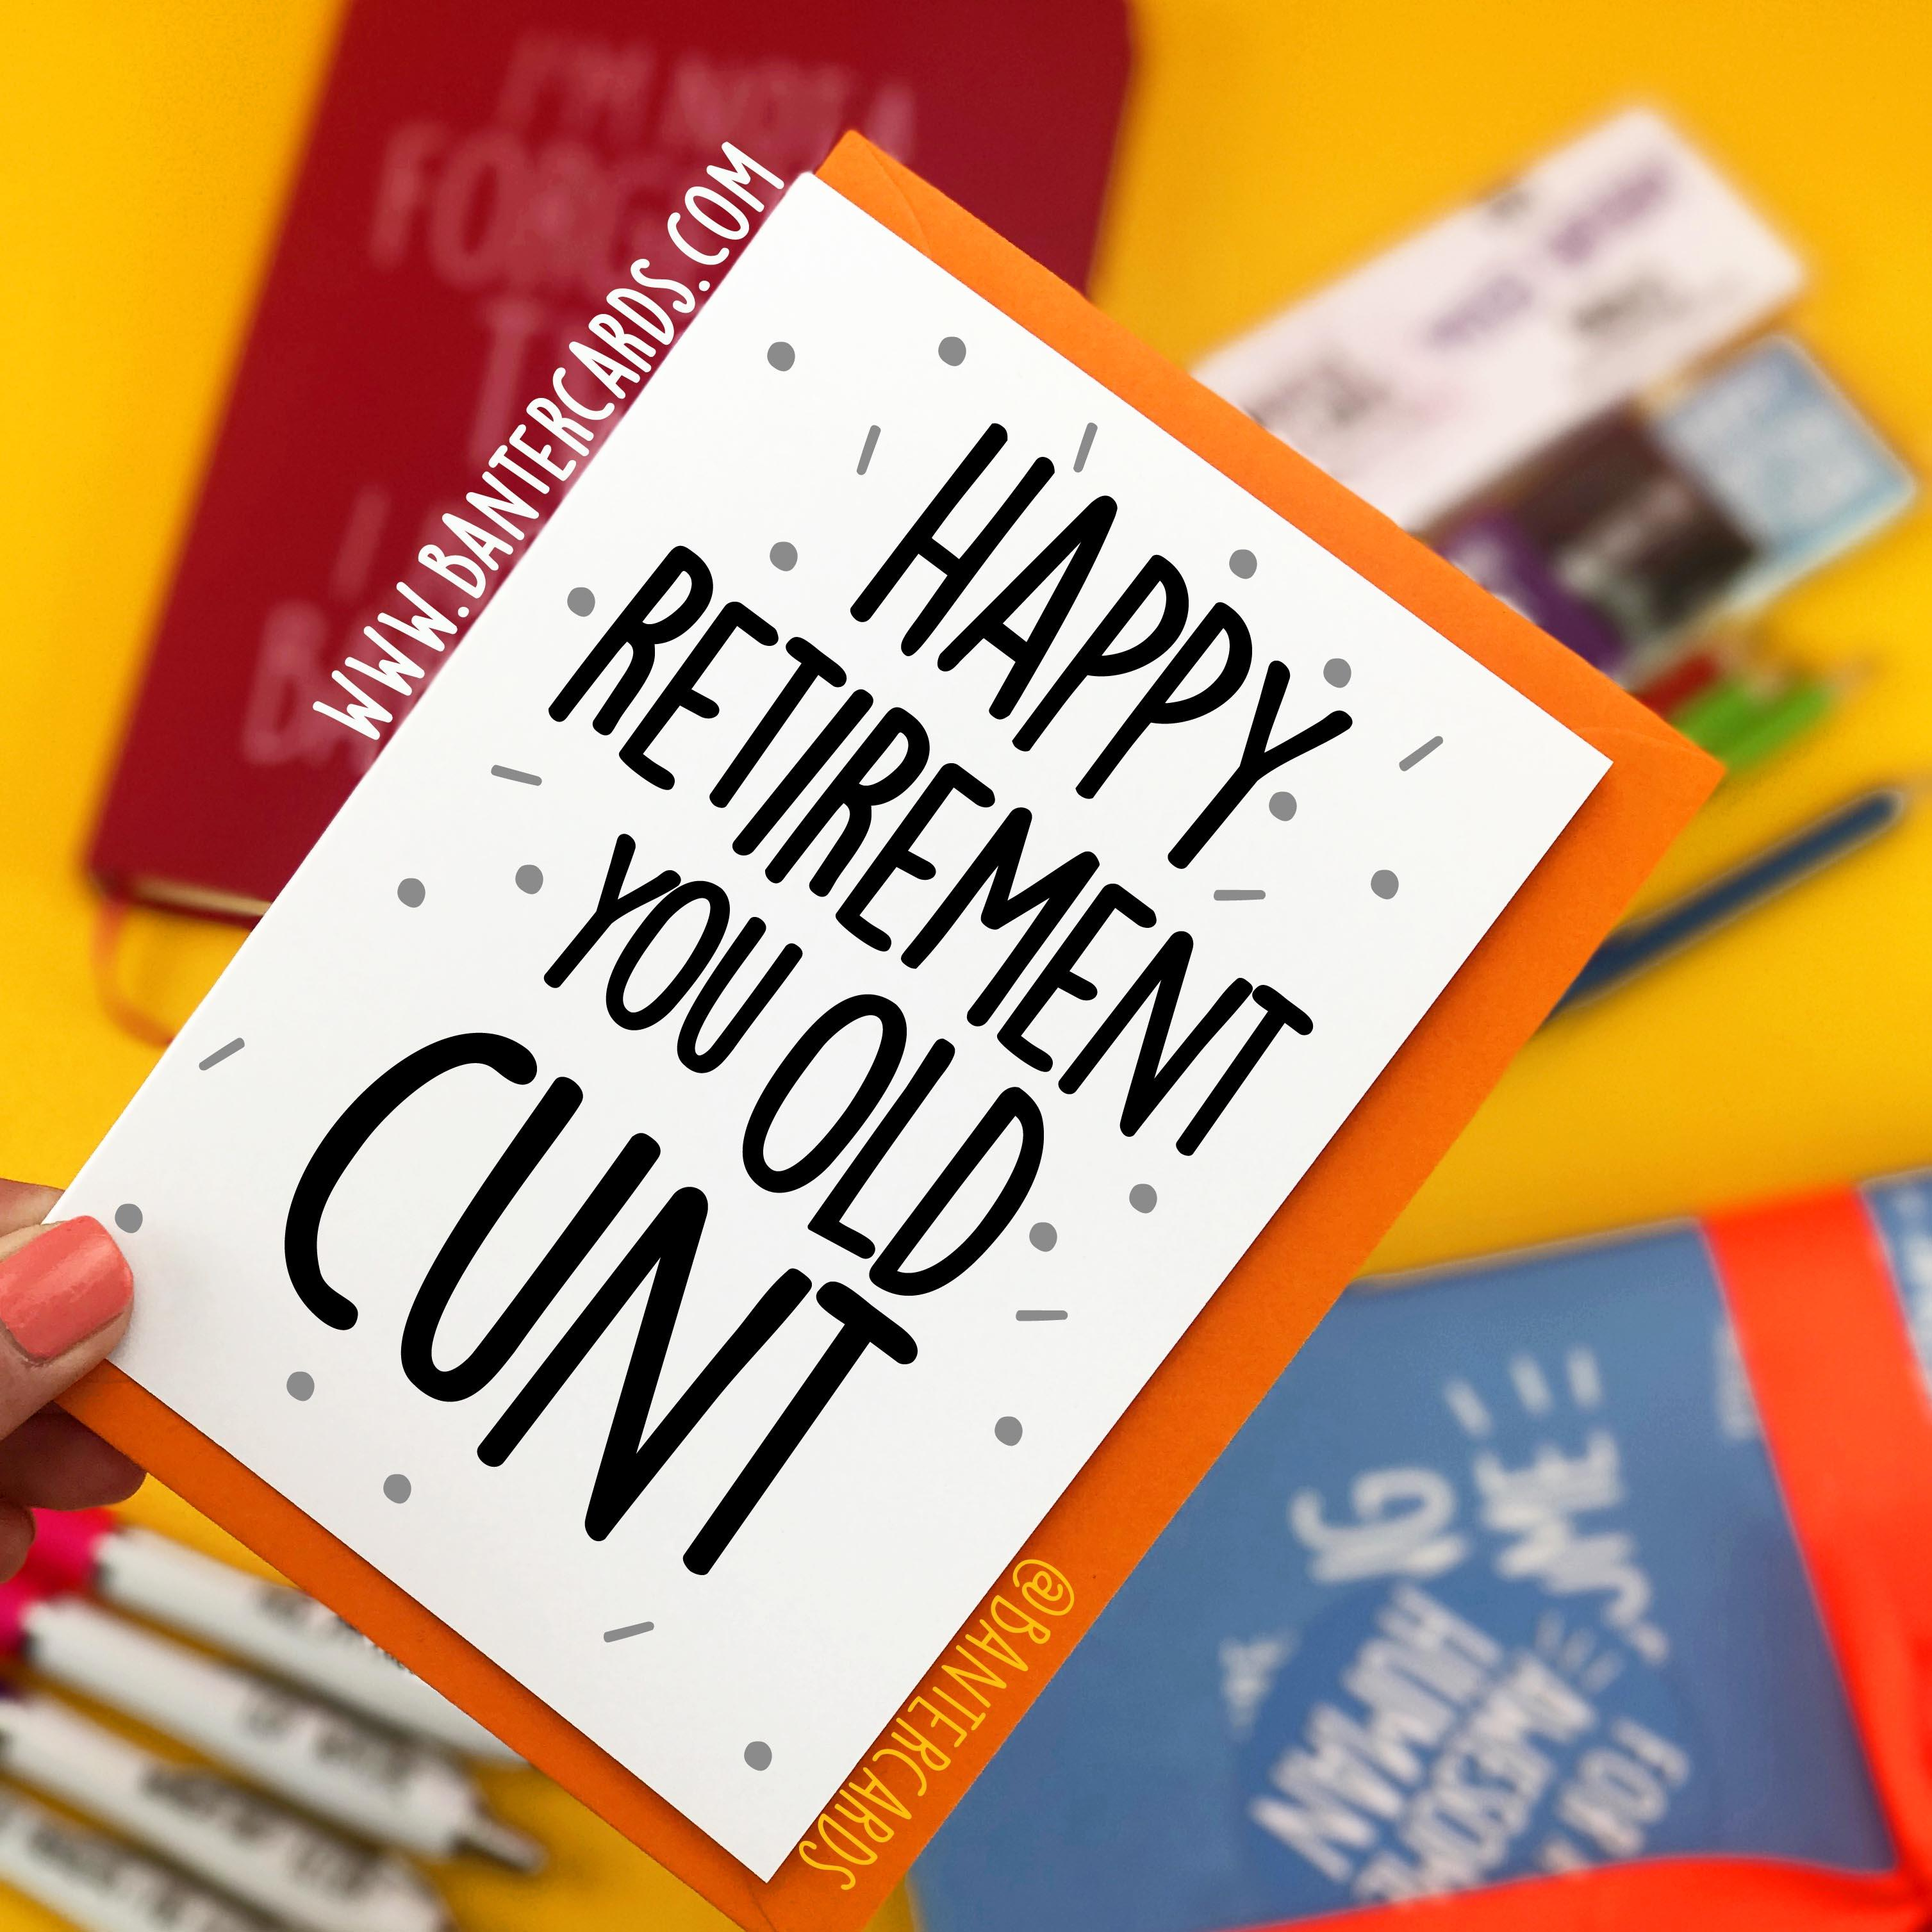 HAPPY RETIREMENT YOU OLD CUNT - FUNNY RETIREMENT CARD